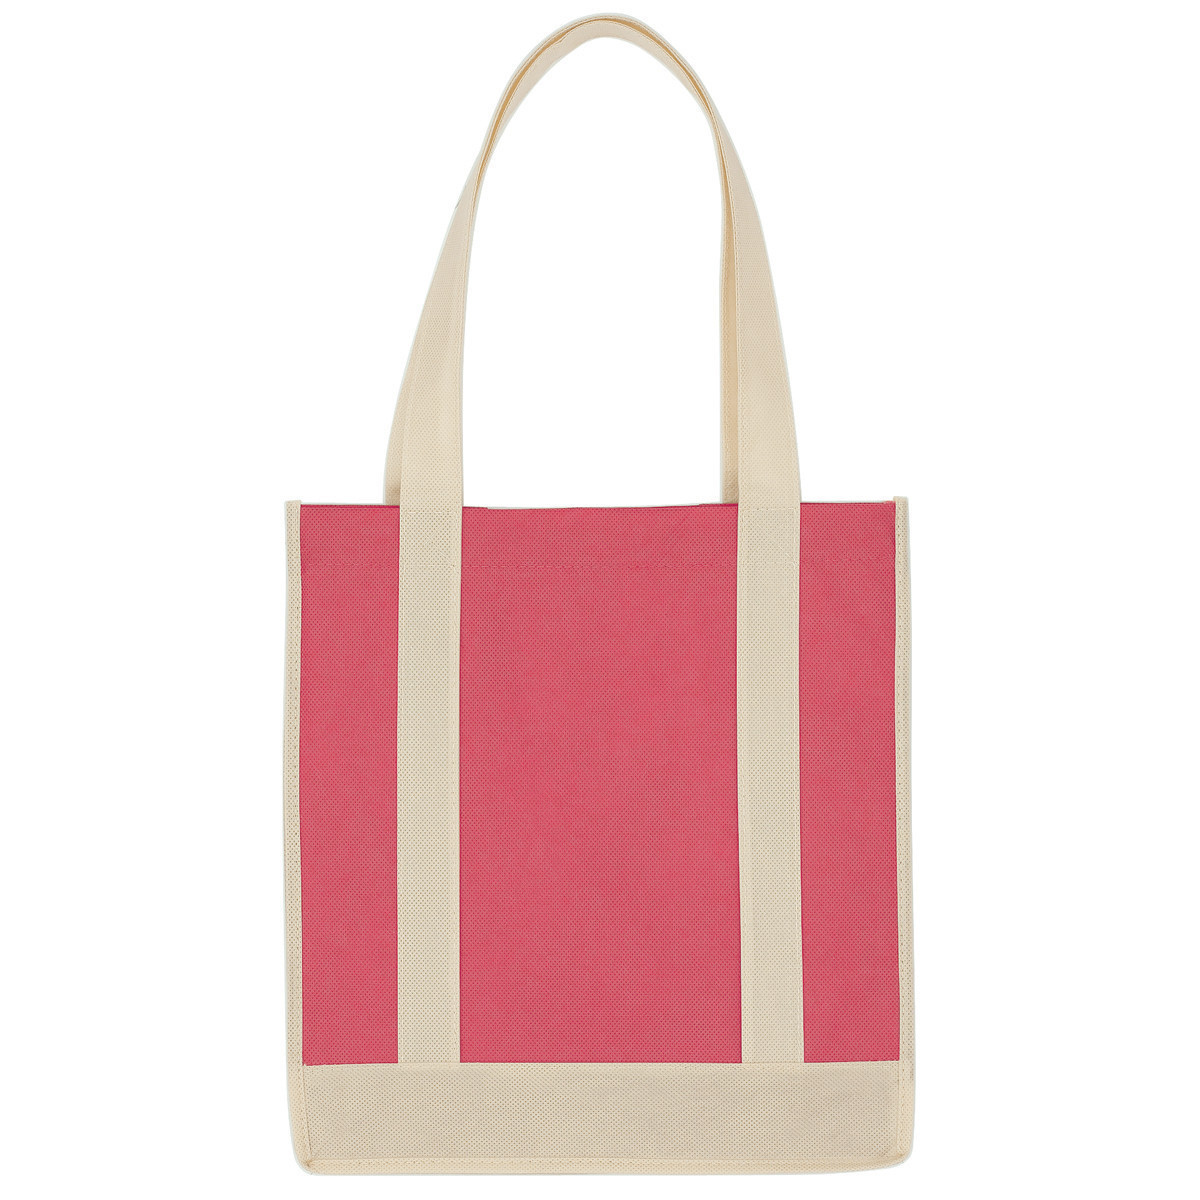 custom cotton shopping bag for promotion or traval